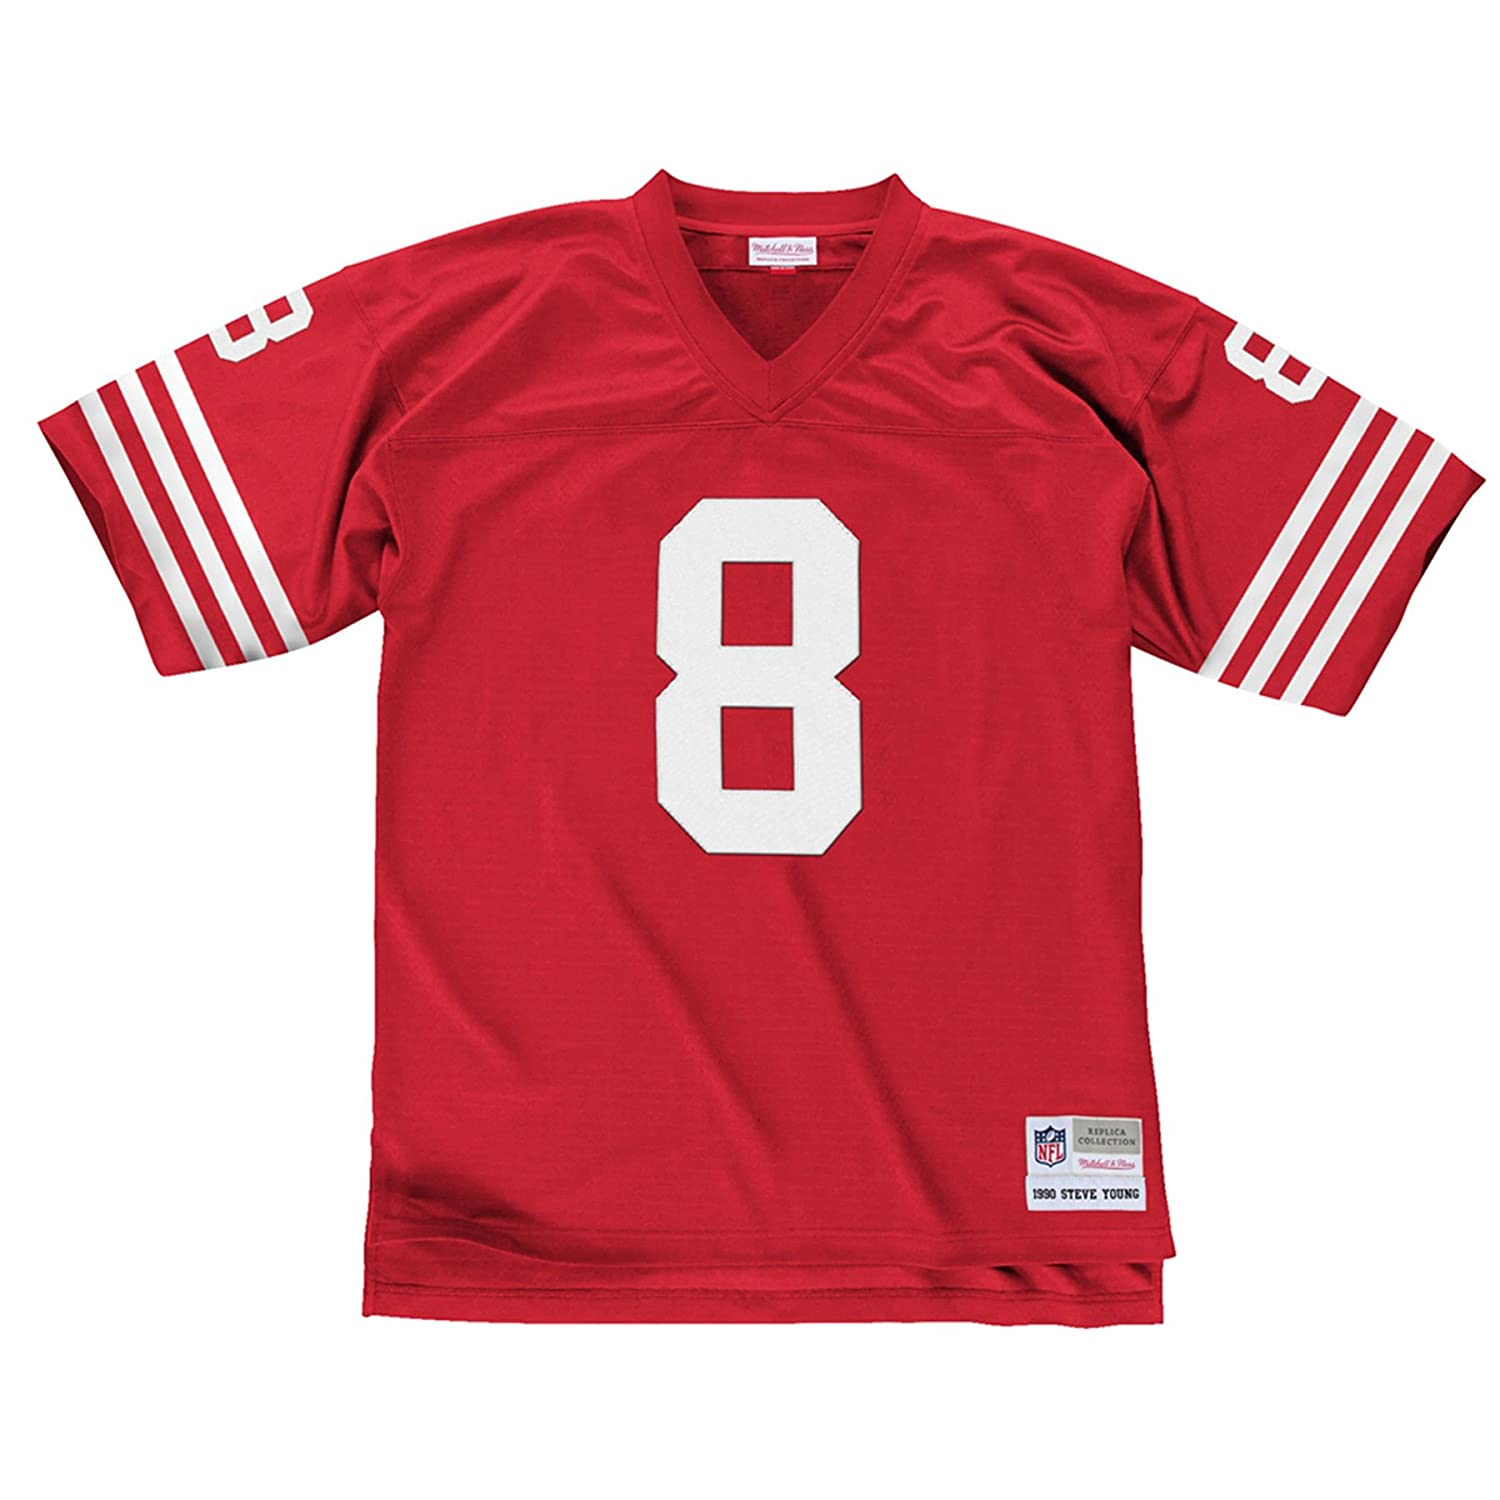 d613484be Amazon.com   Mitchell   Ness Steve Young San Francisco 49ers Throwback  Premier Red Jersey   Football Jerseys   Sports   Outdoors